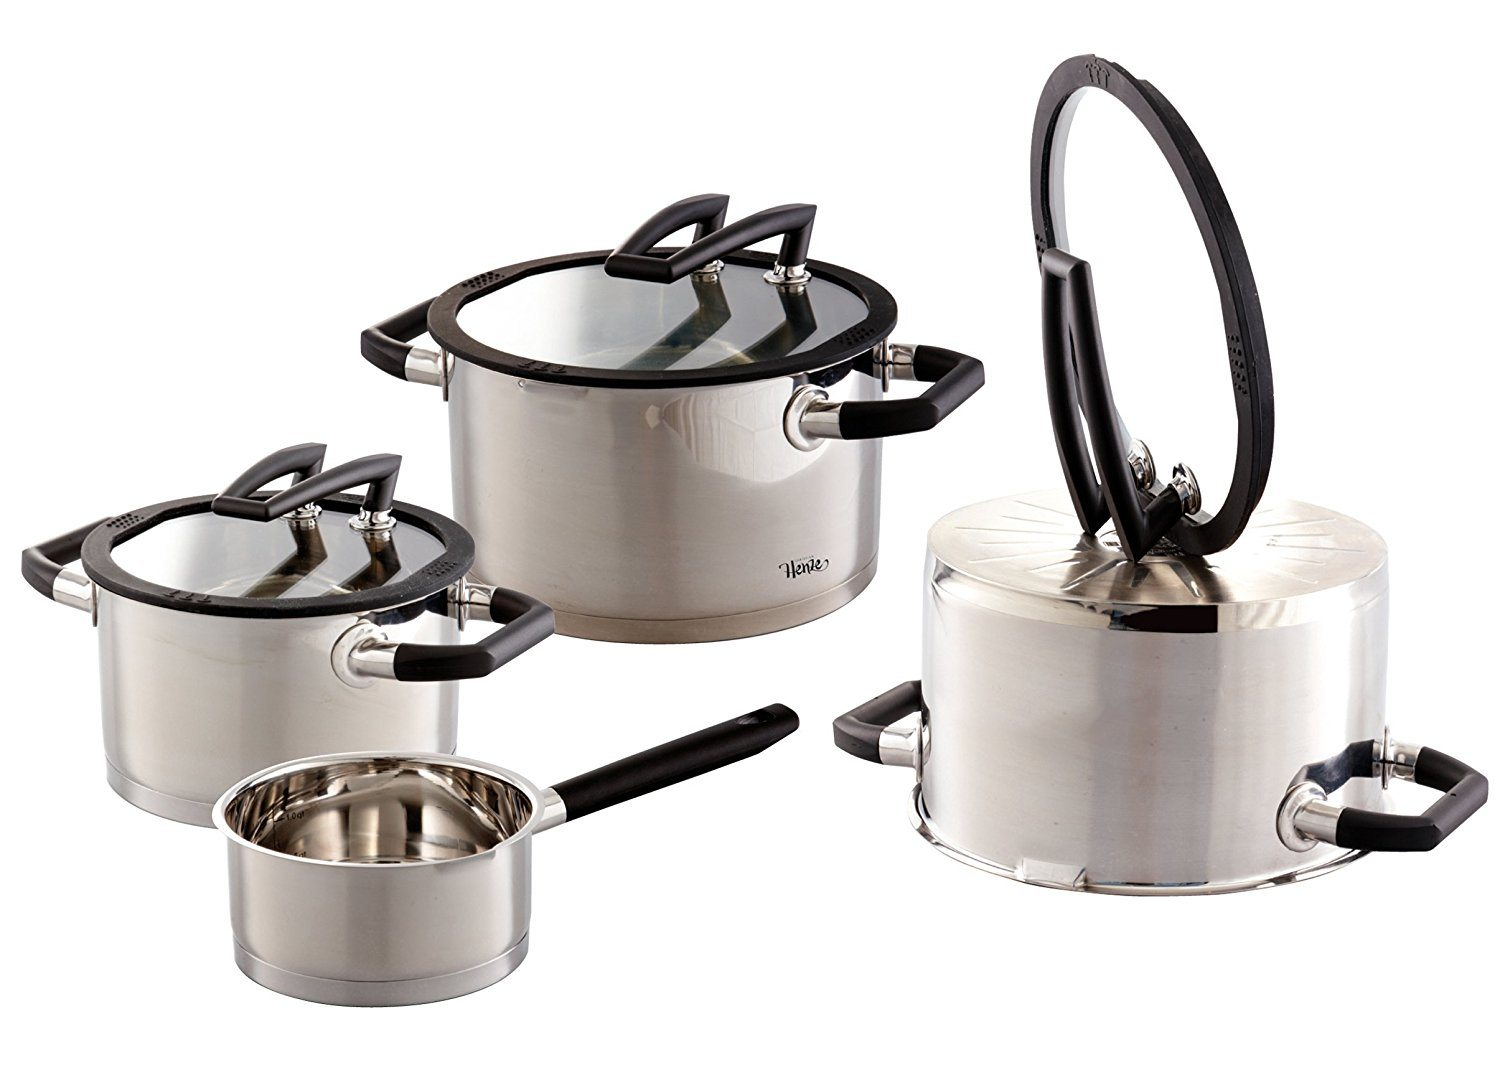 ELO 7-Piece stainless steel cookware set